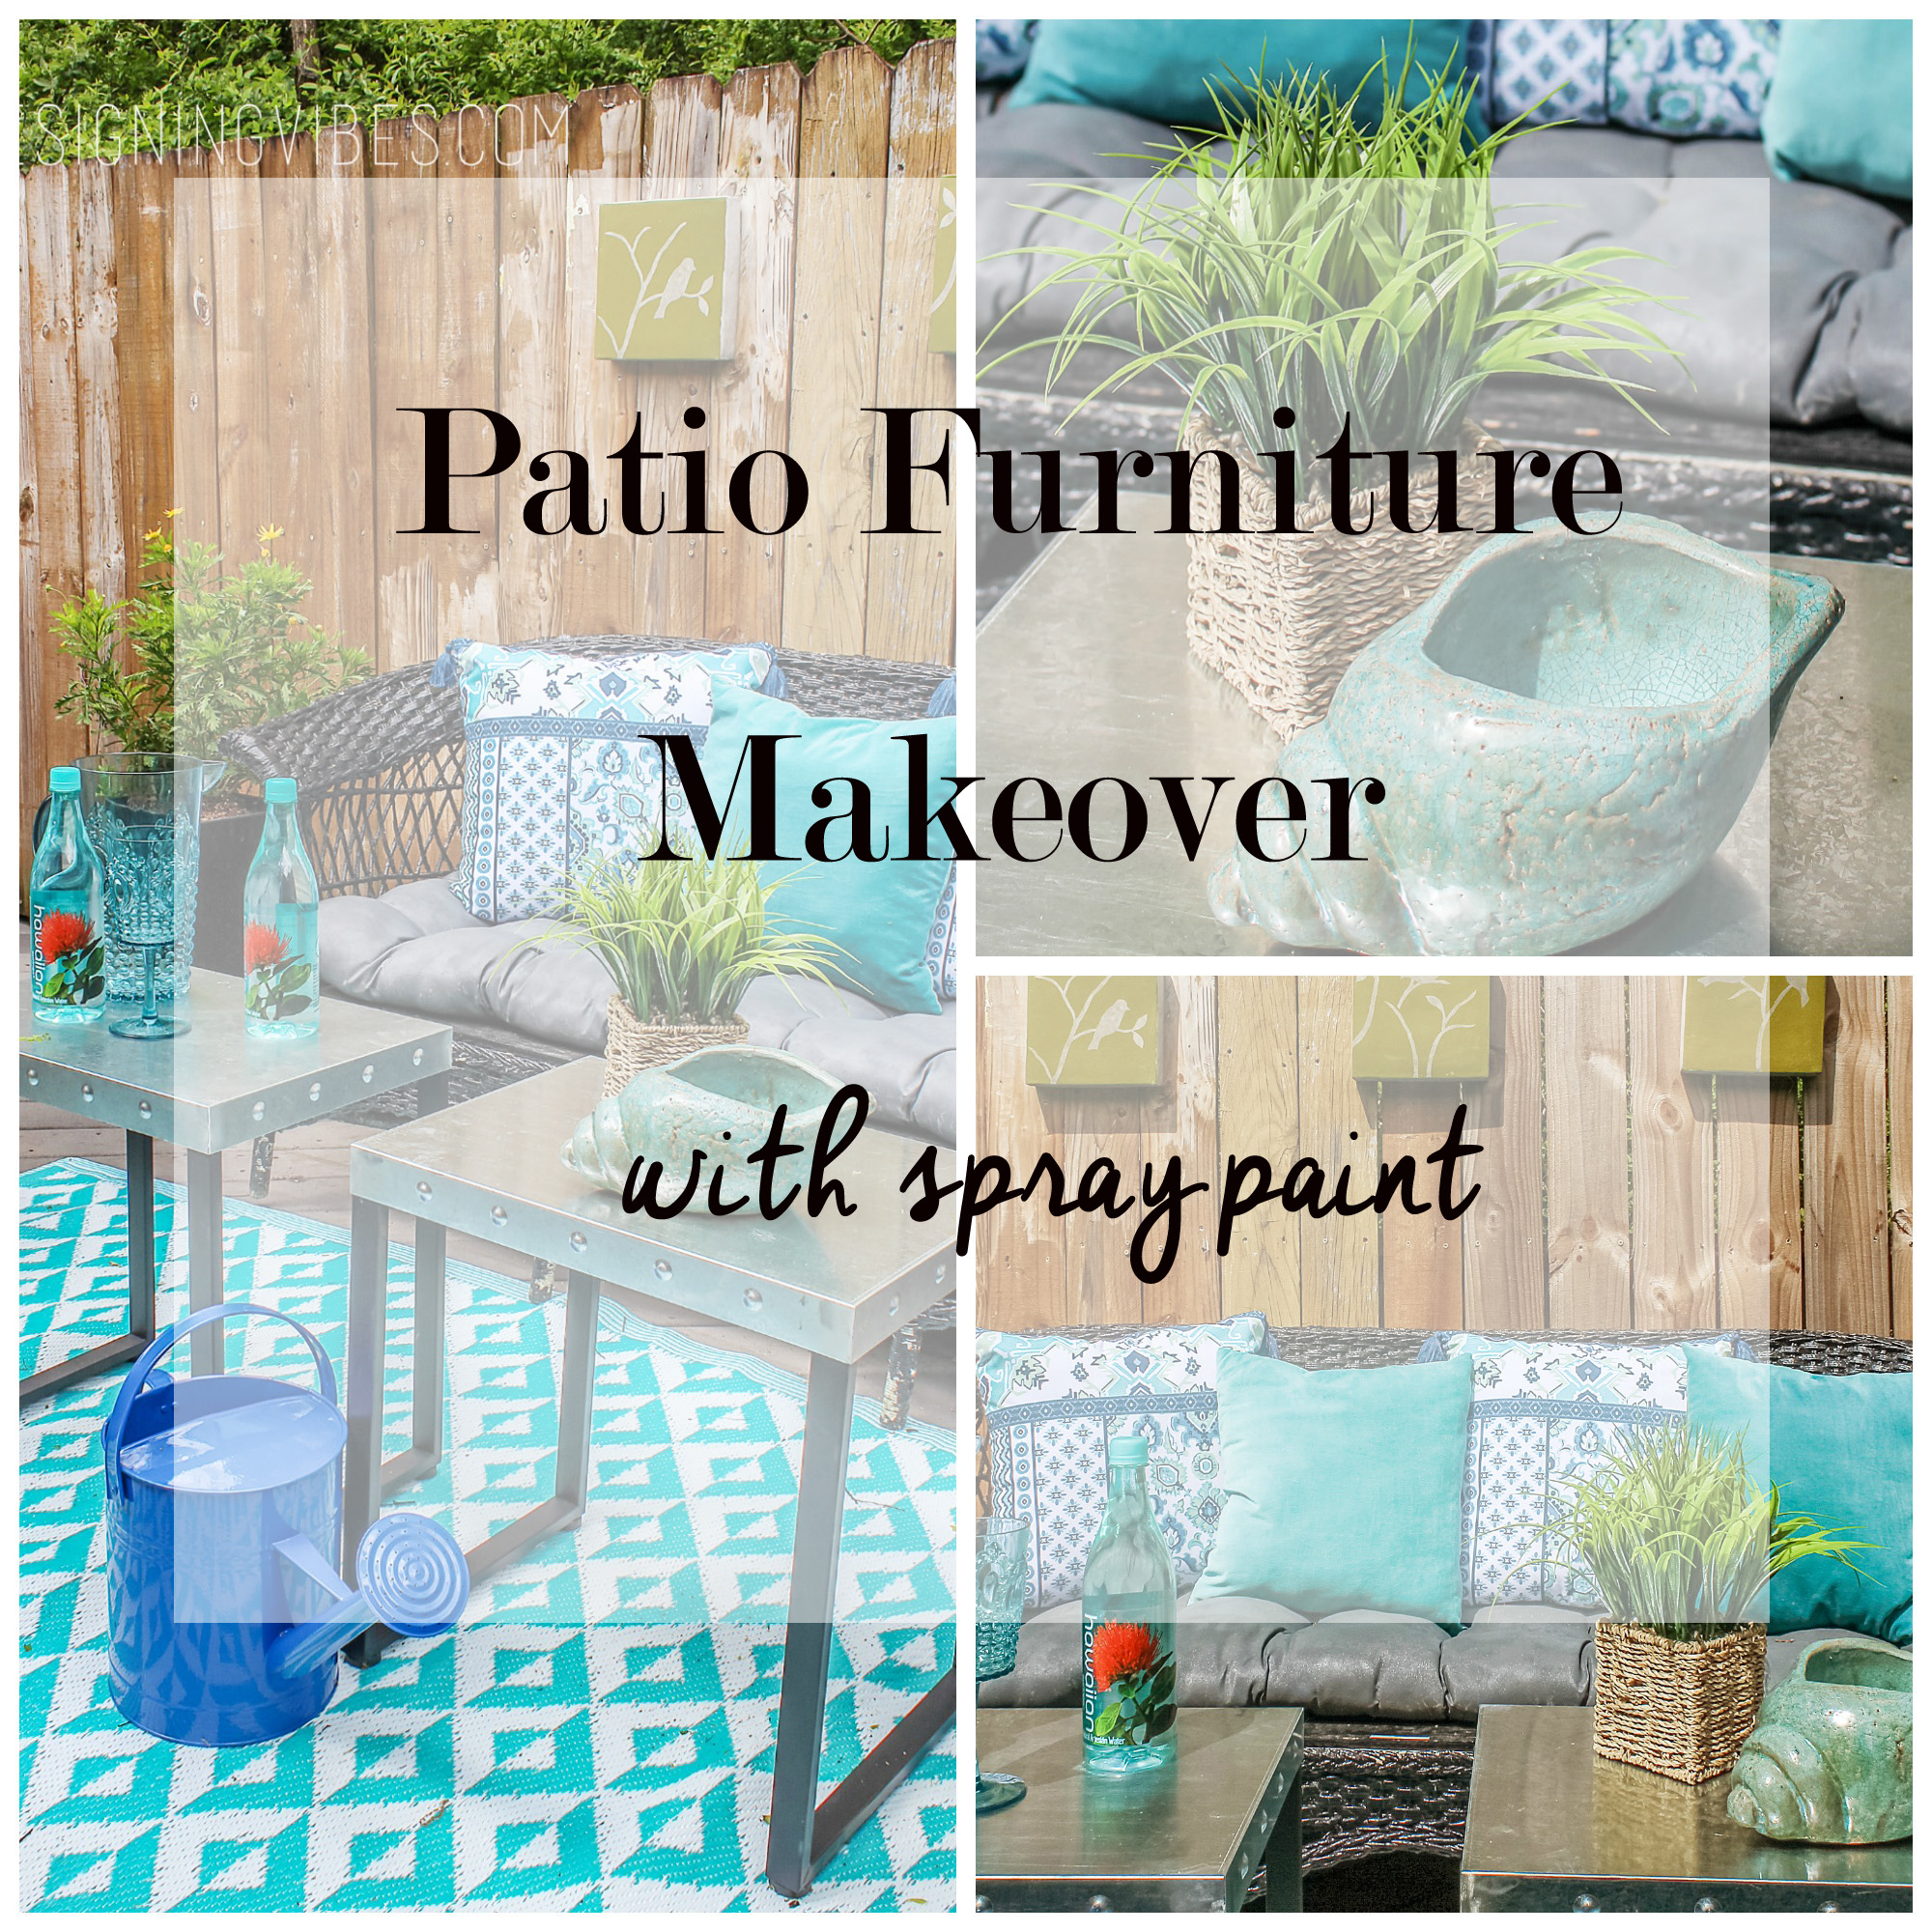 Spray Paint Fixes Everything   DIY Patio Furniture Makeover   Designing  Vibes   Interior Design And Home Improvement DIY